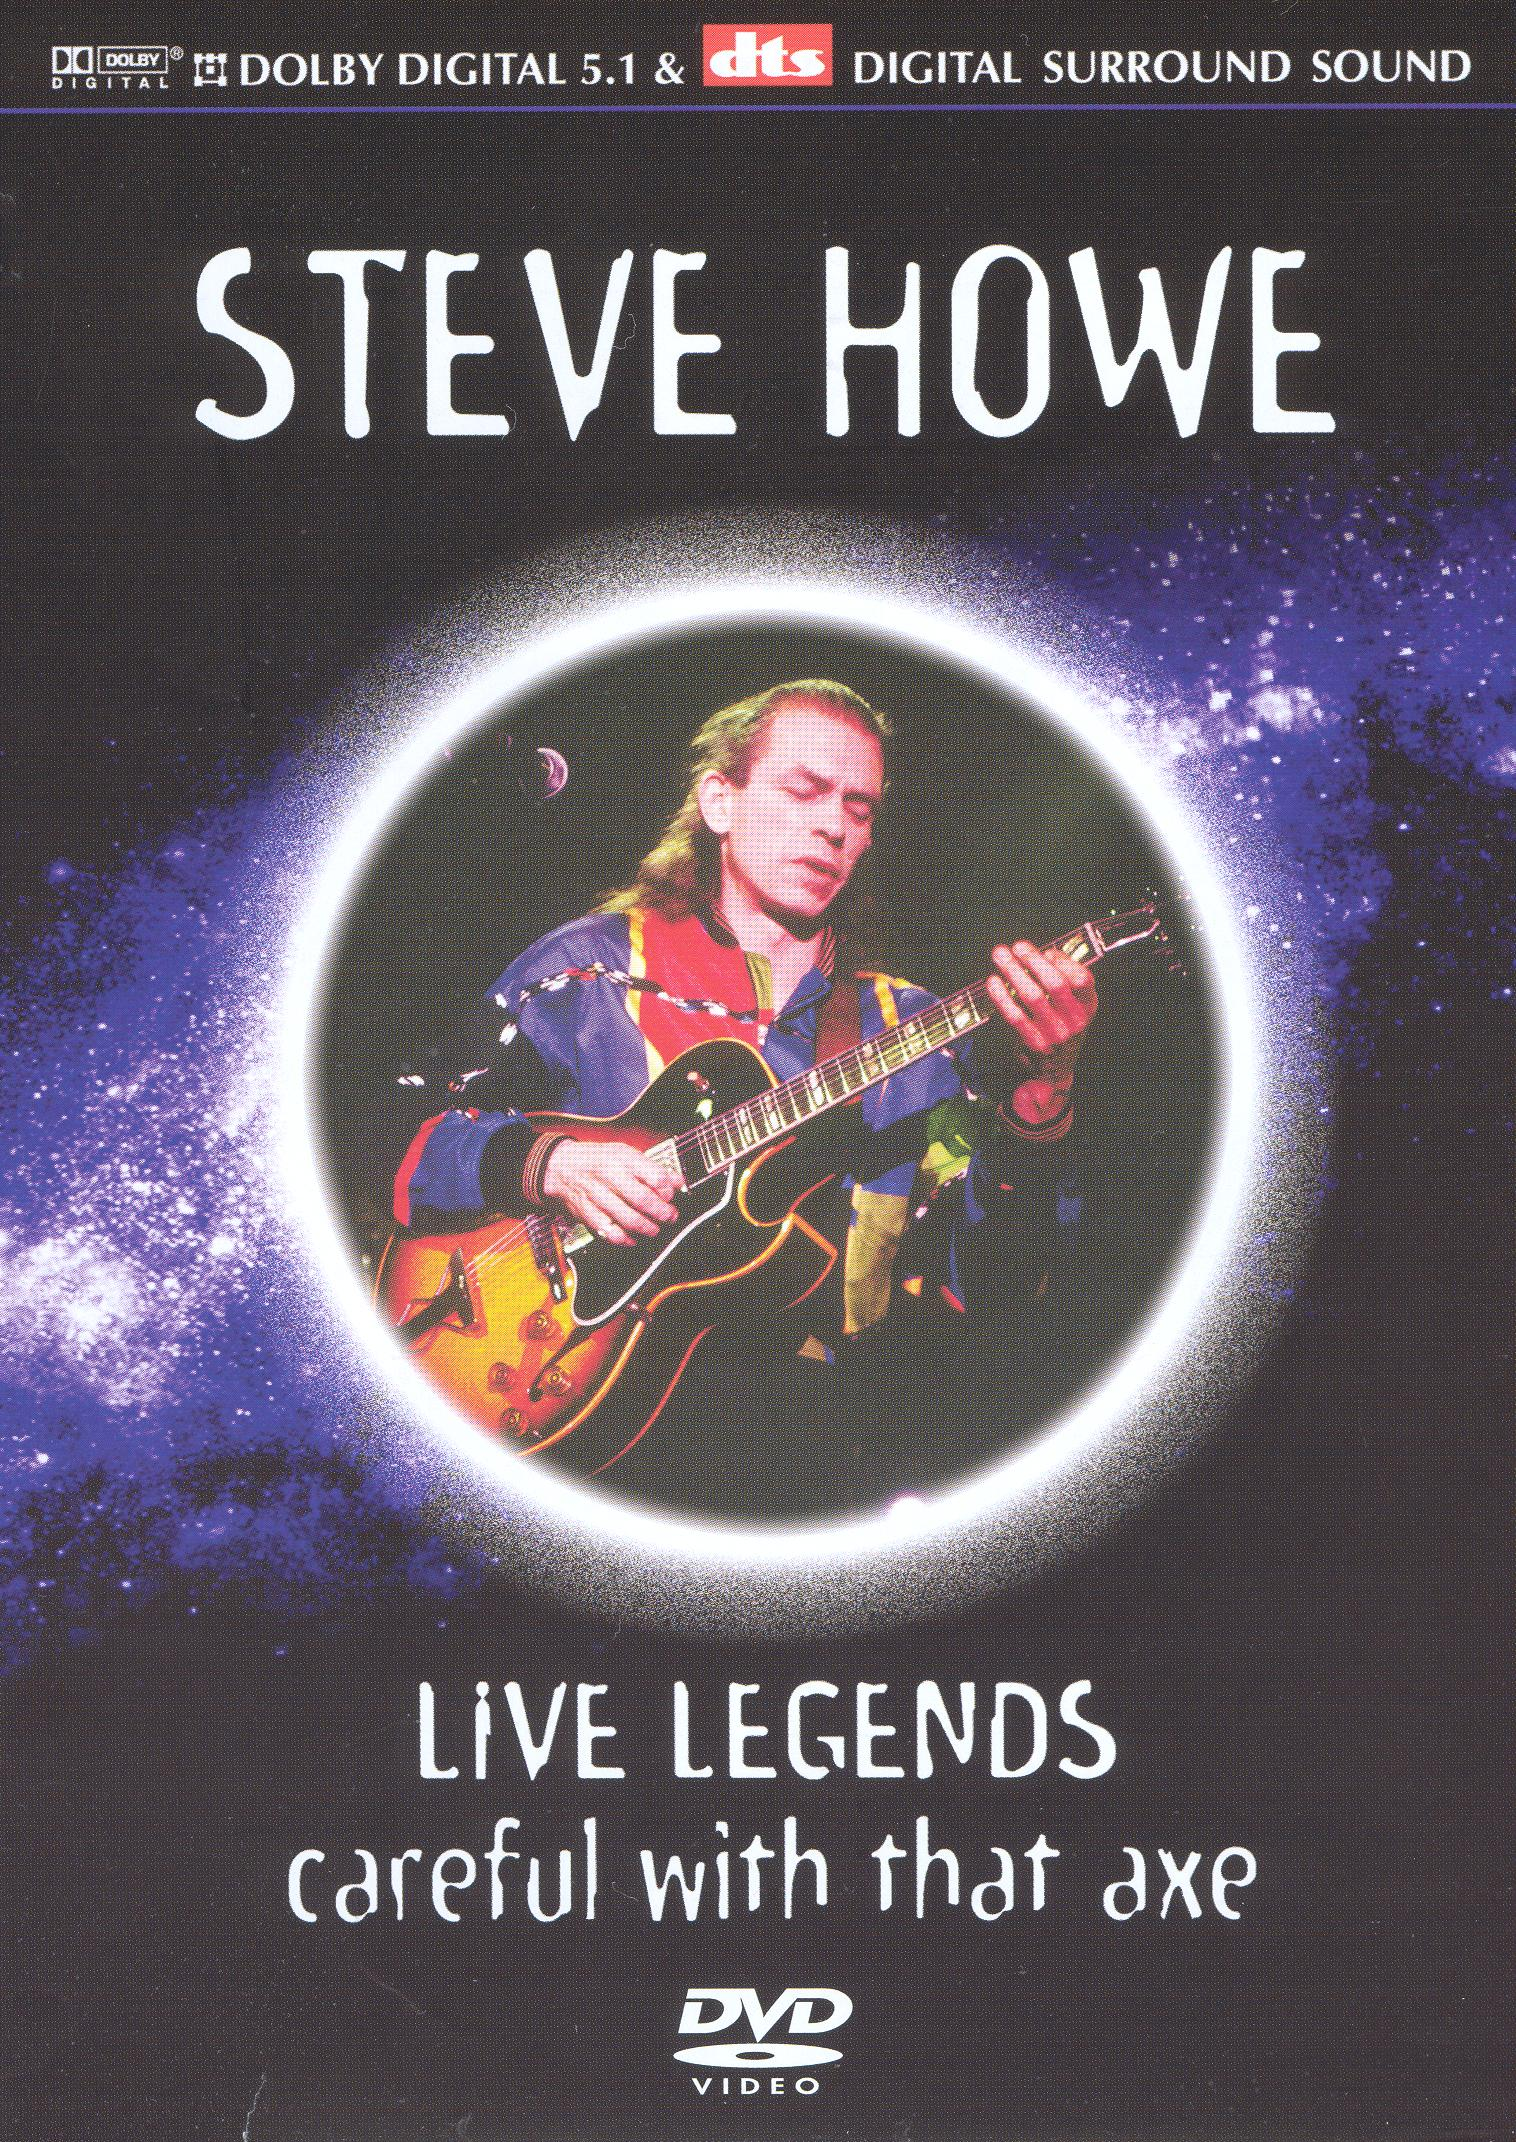 Steve Howe: Careful With That Axe - Live Legends